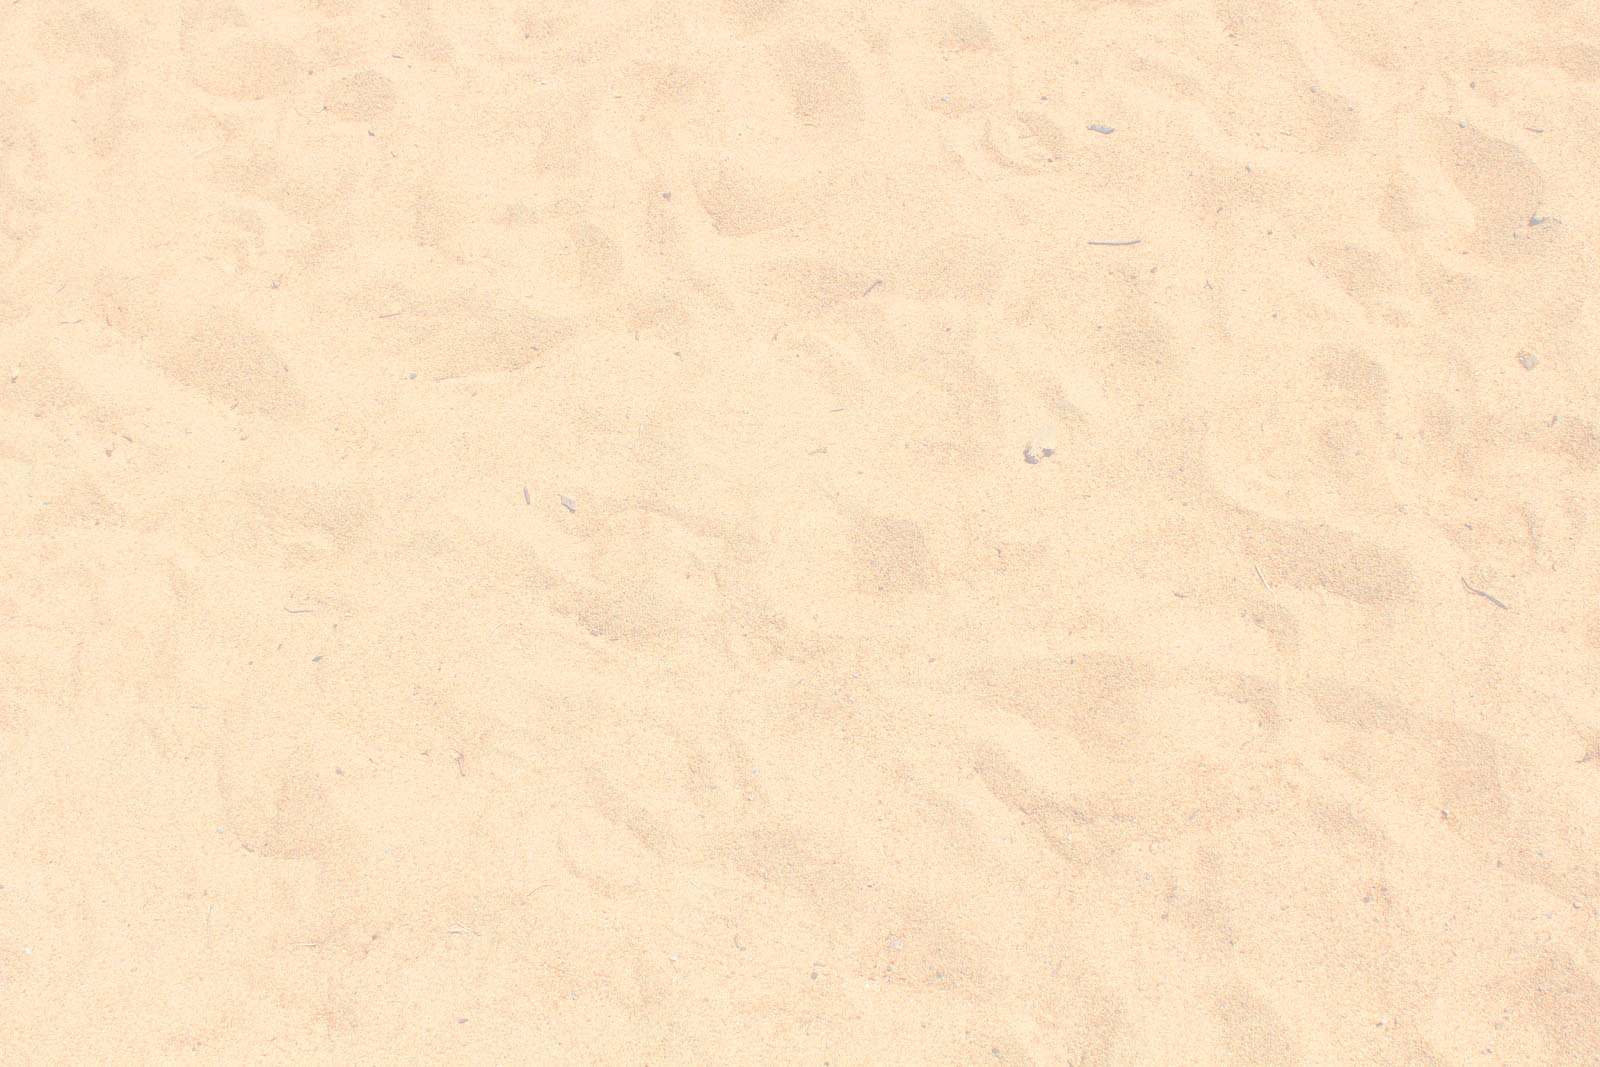 playground_sand_texture_by_thesilentnight-d3n70sx light